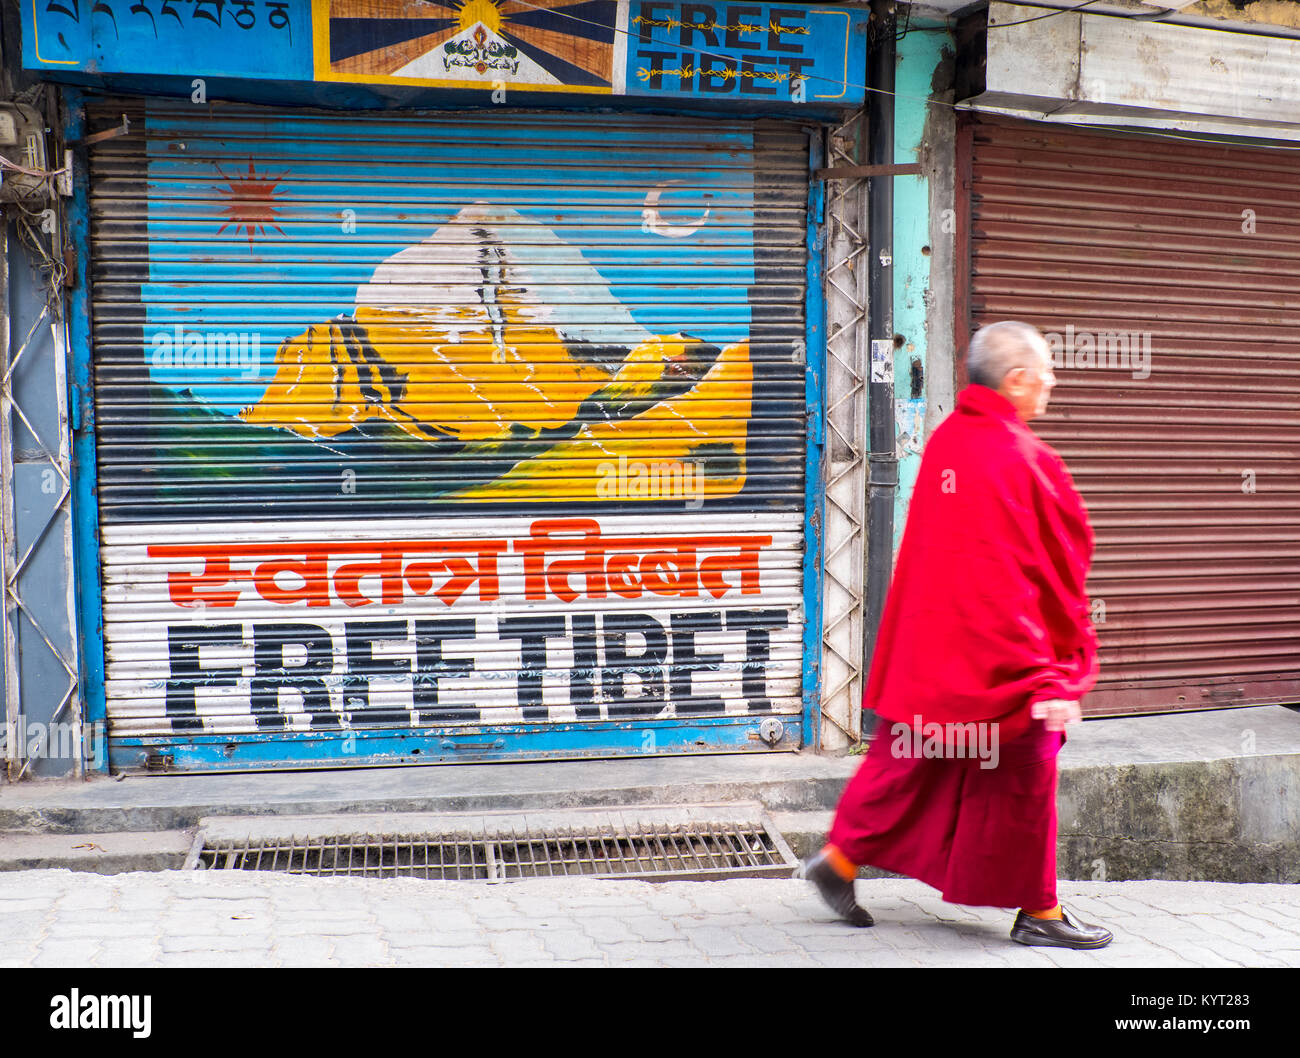 A Tibetan monk walking past a 'Free Tibet' mural in Dharamshala, India, the home of the Tibetan Government - Stock Image